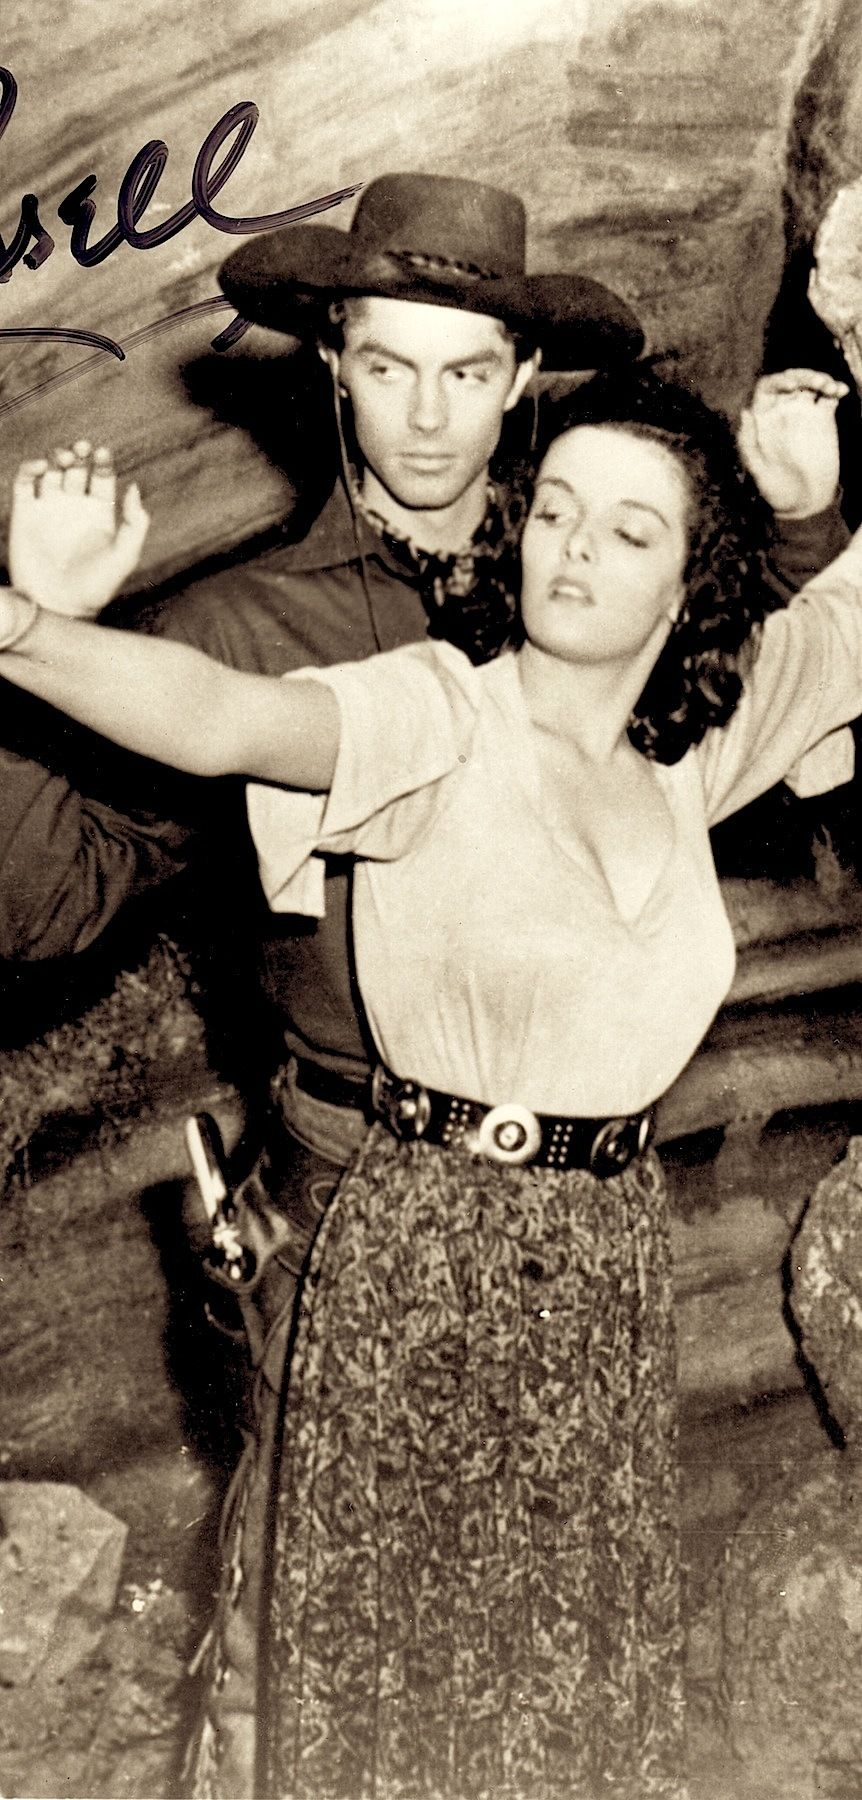 Jane russell in bondage